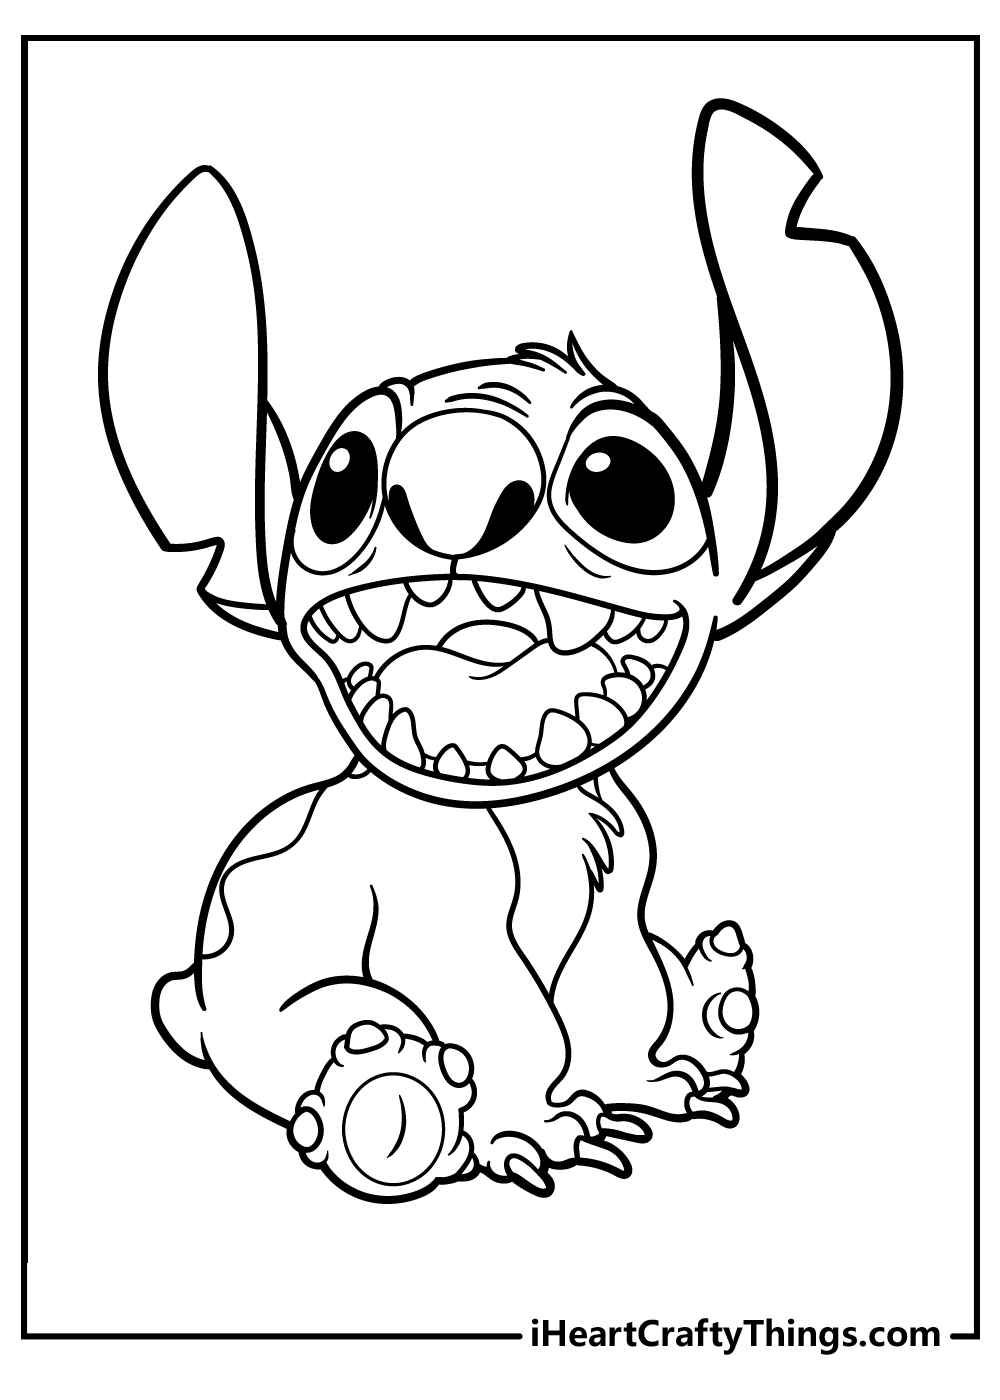 lilo stitch coloring updated lilostitch ship pictures to trace triumphal arch activities coloring pages Stitch Coloring Page